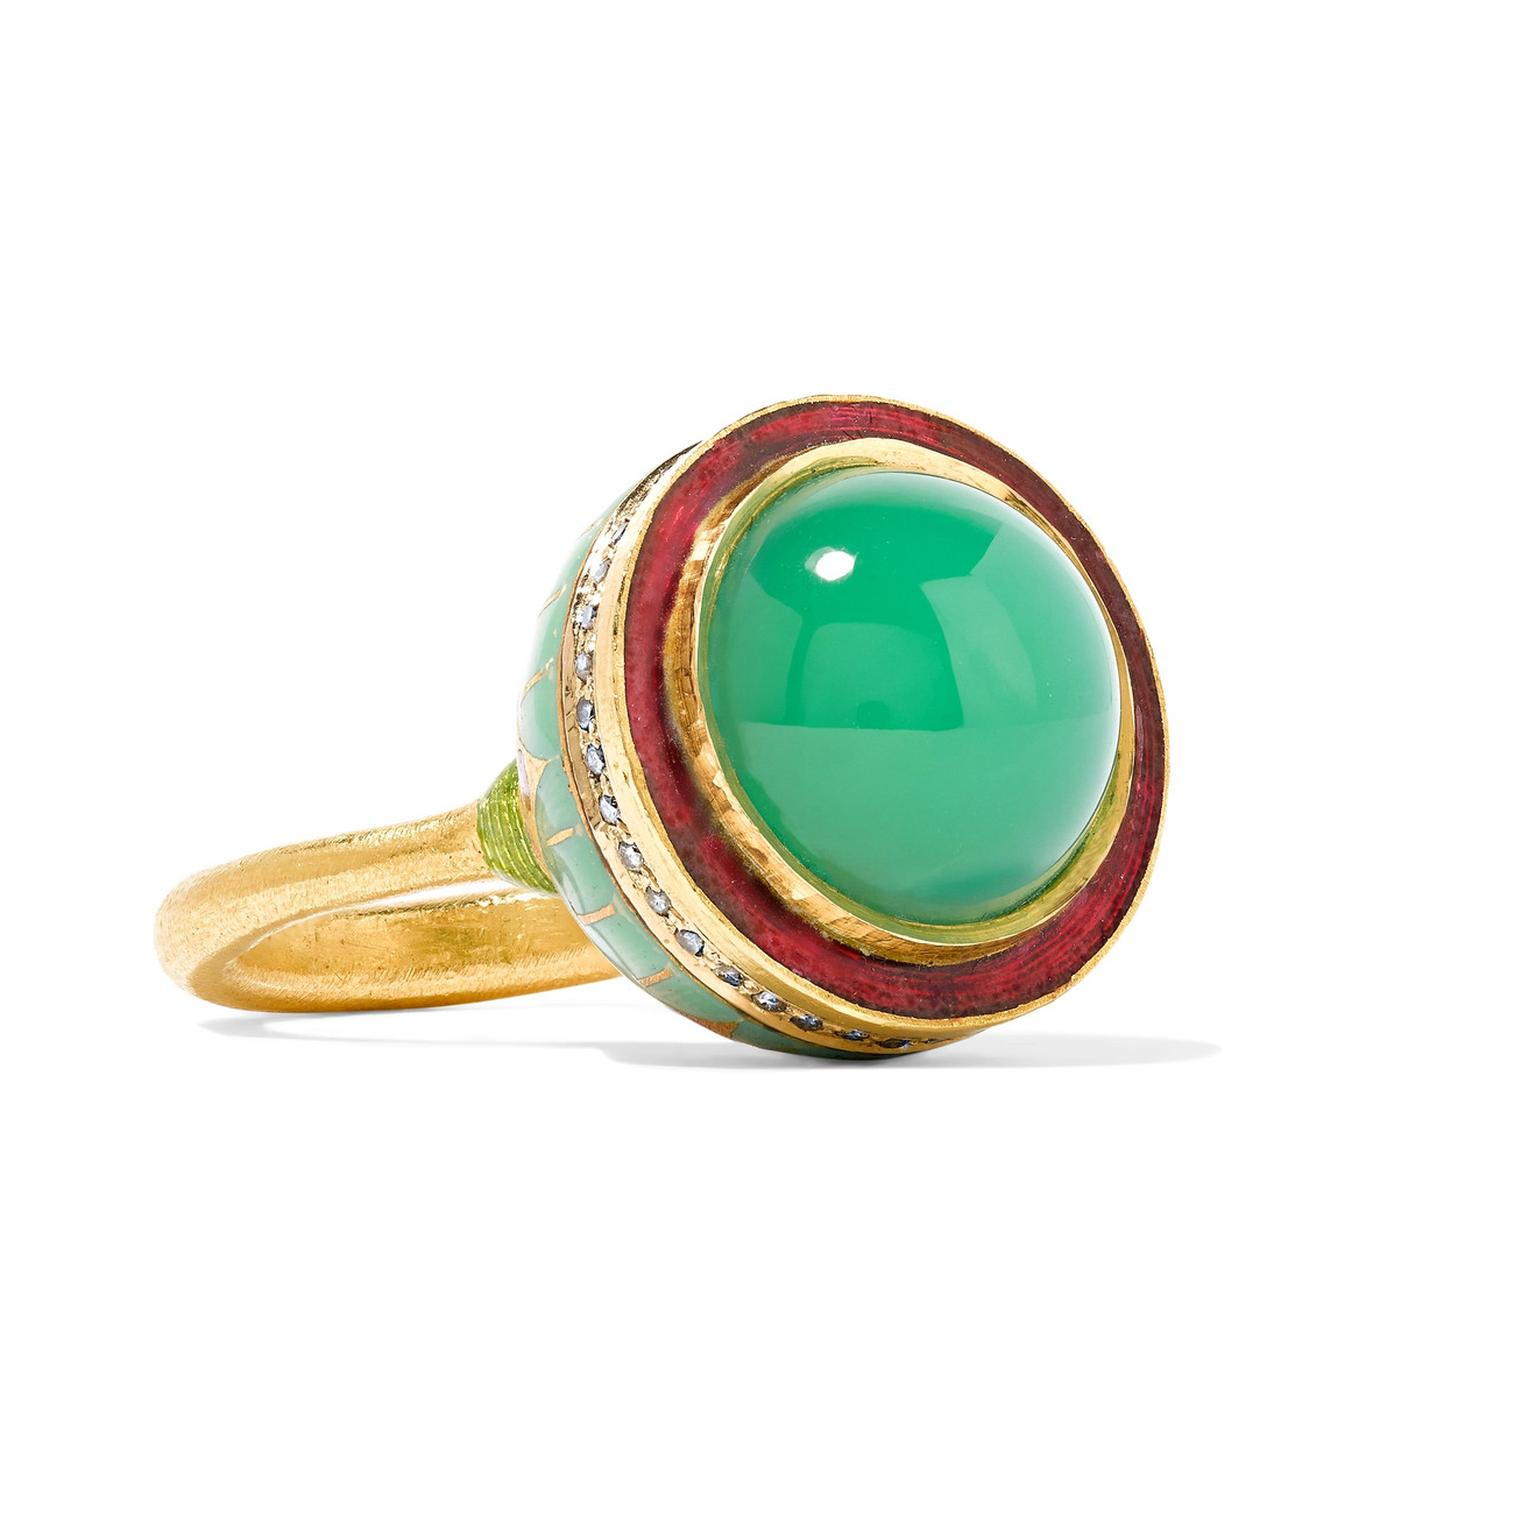 Alice Cicolini chrysoprase and enamel ring